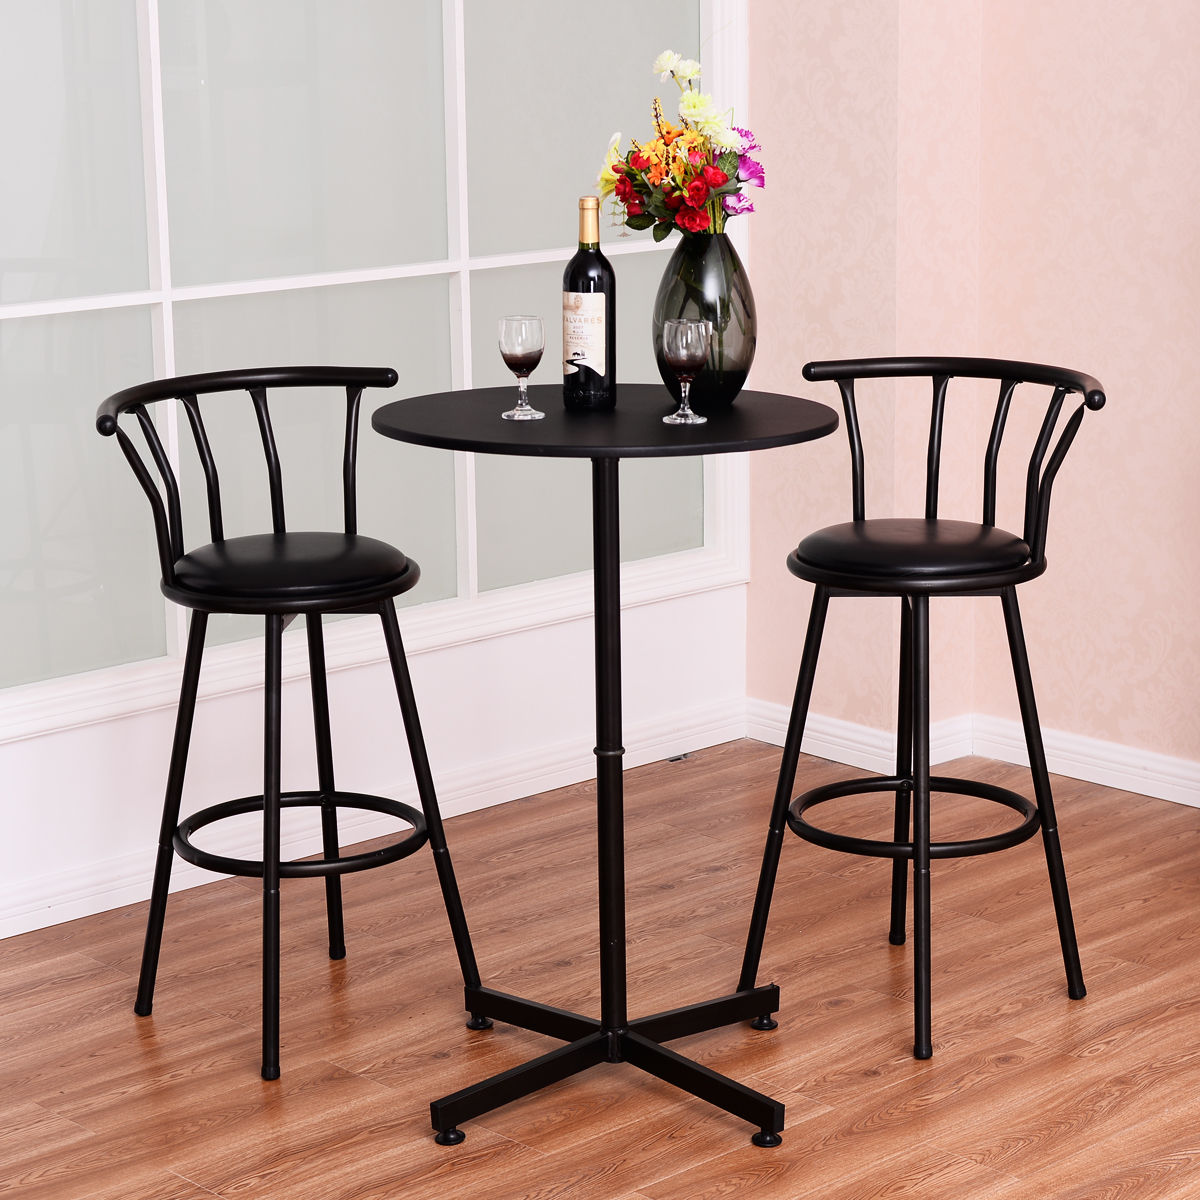 Costway 3 Piece Bar Table Set with 2 Stools Bistro Pub Kitchen Dining Furniture Black & 3-piece Bar Table Sets